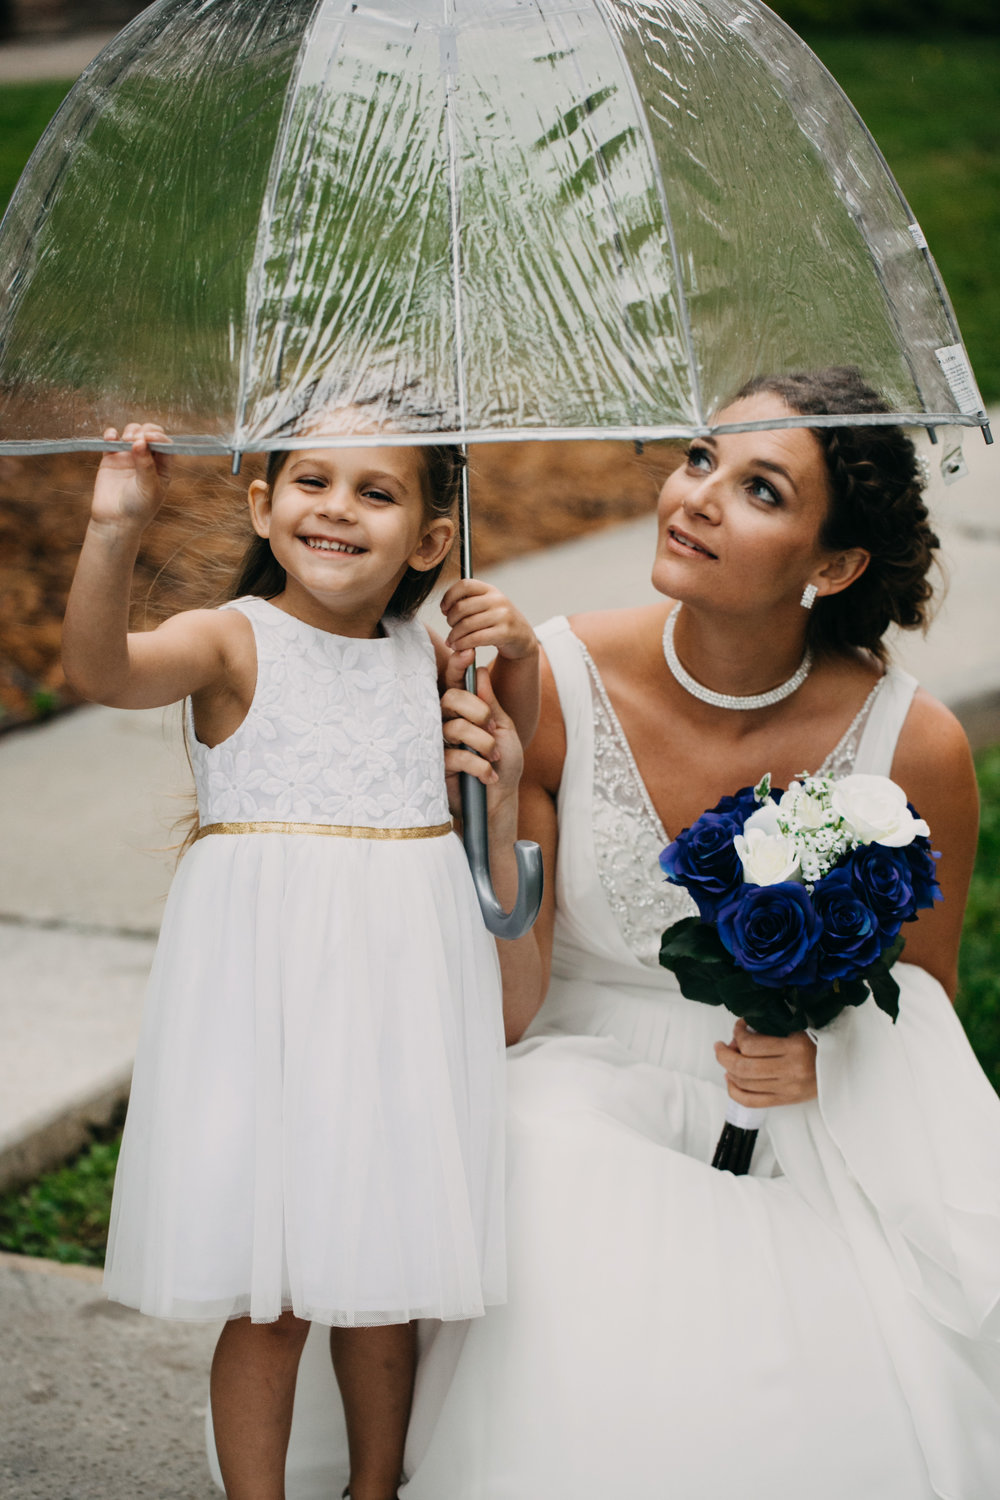 mother and daughter, flower girl, wedding day, wedding dress, bride, WV bride, MD bride, MD wedding, Deep Creek wedding, Deep Creek MD, Wisp Resort